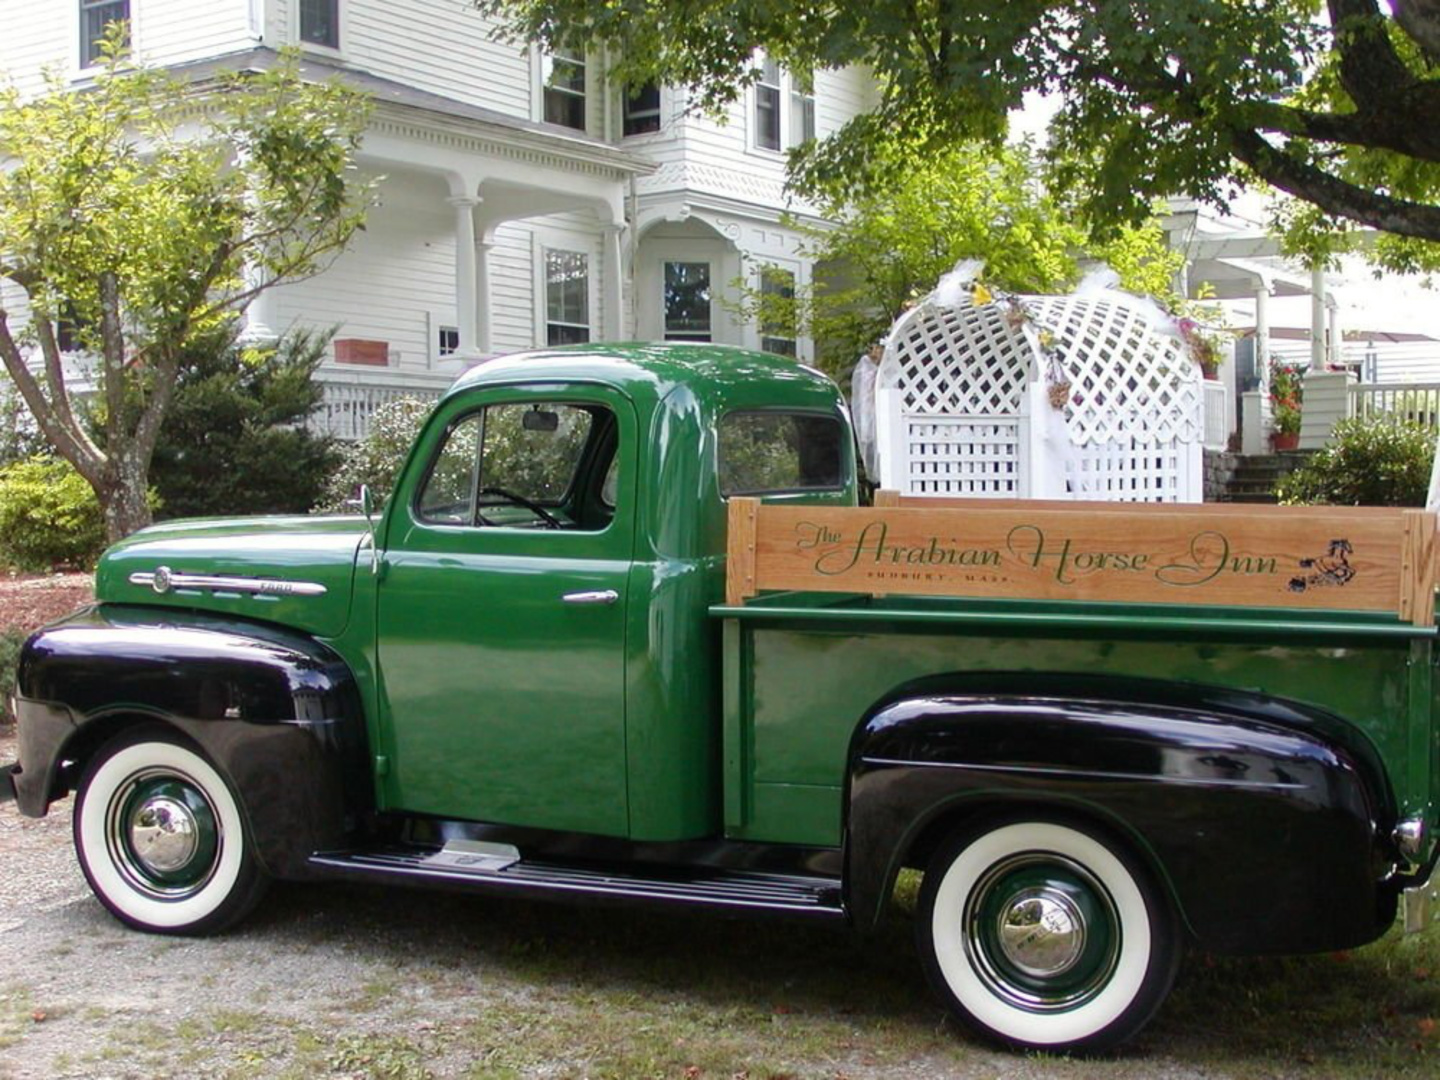 A green truck parked in front of a house at Inn On The Horse Farm.